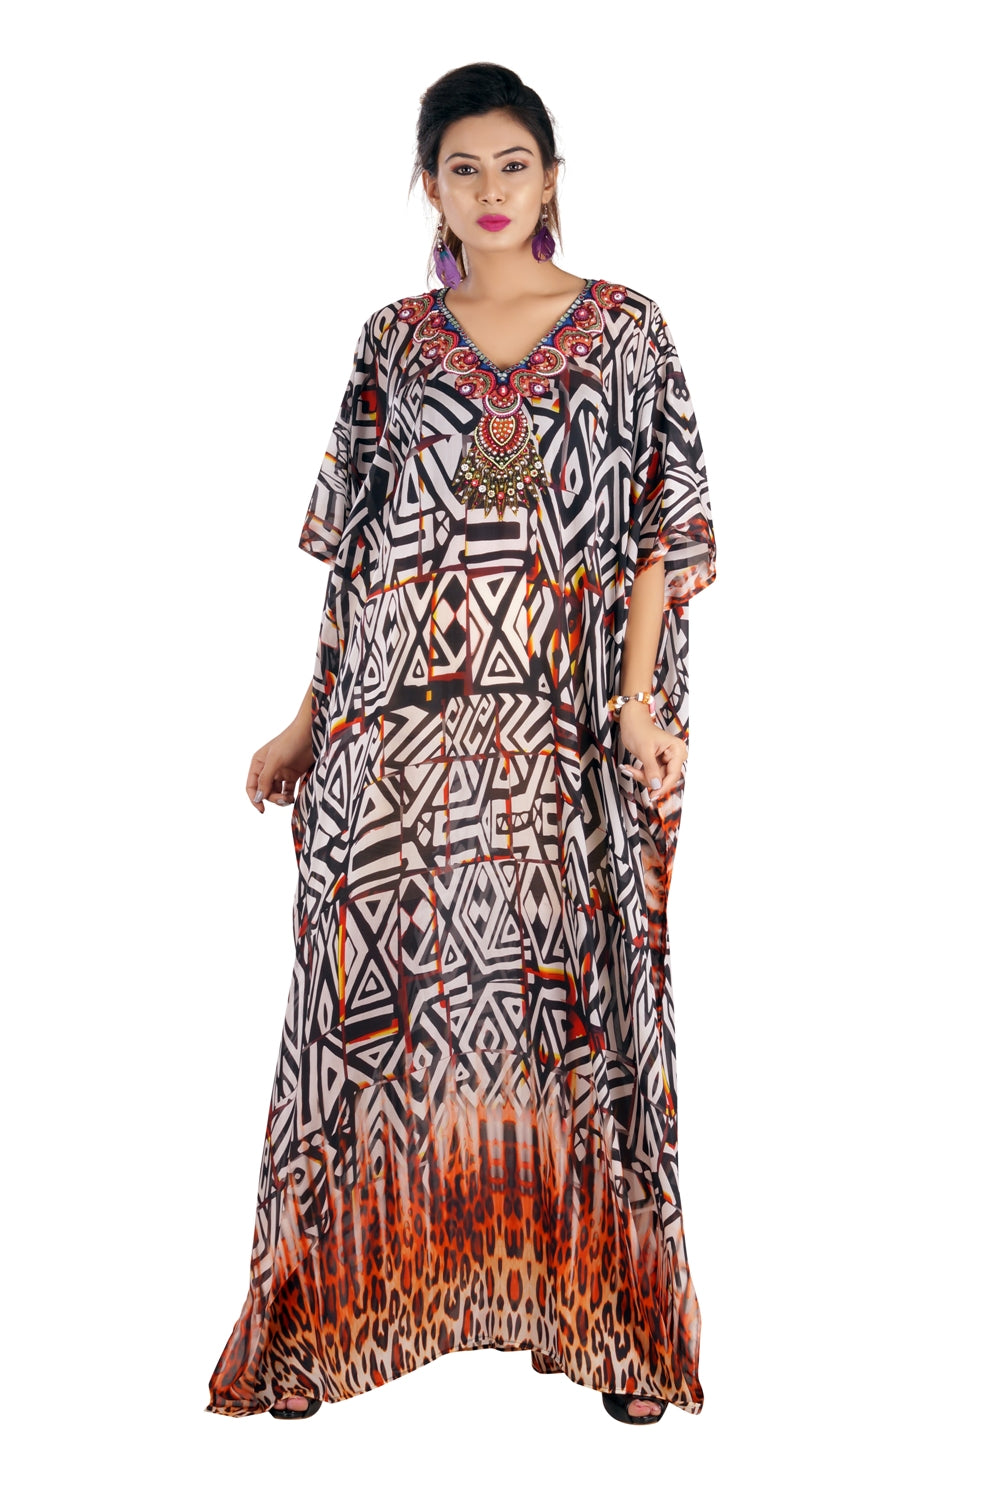 Geometric Patterns with Basic Animal Print at the Bottom of Maxi Long pool party kaftan - Silk kaftan